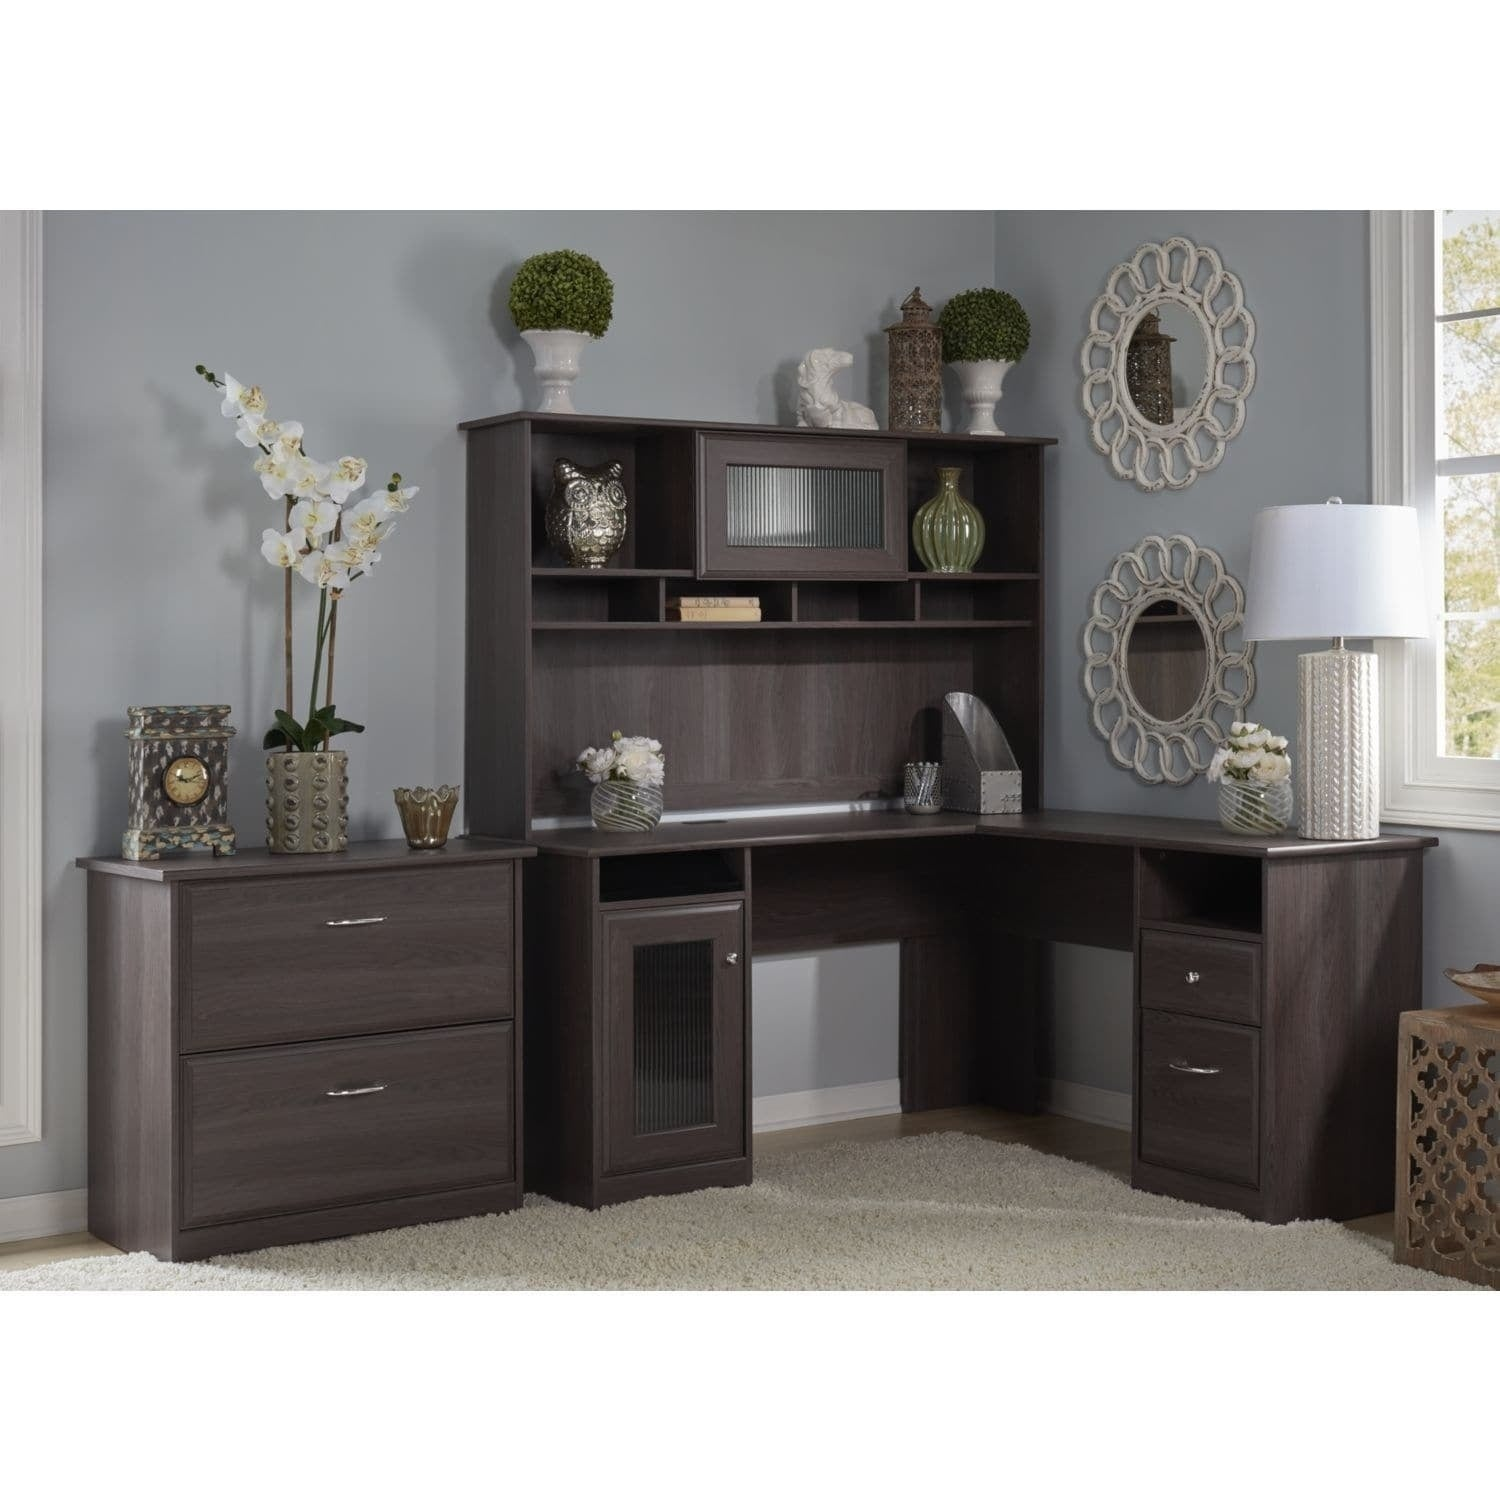 Advantages Of White Desk Hutch Furnishings Buy Hutch Desk Online at Overstock | Our Best Home Office Furniture Deals